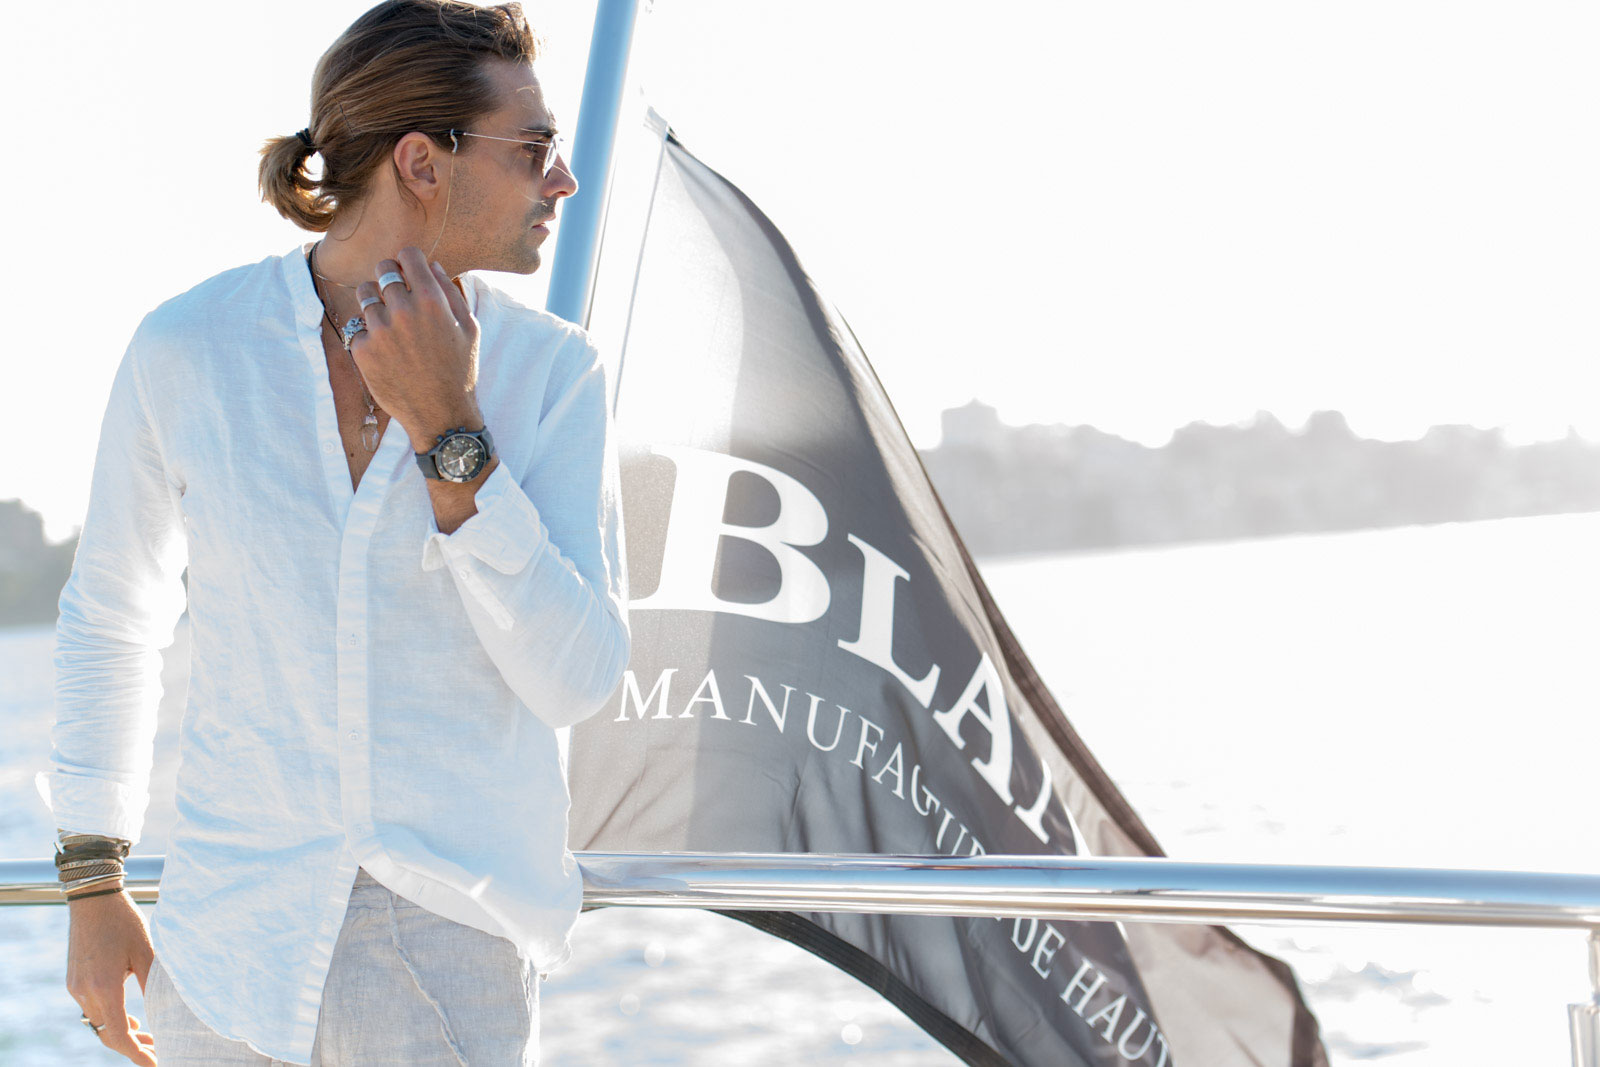 blancpain-syd-event-2016-3